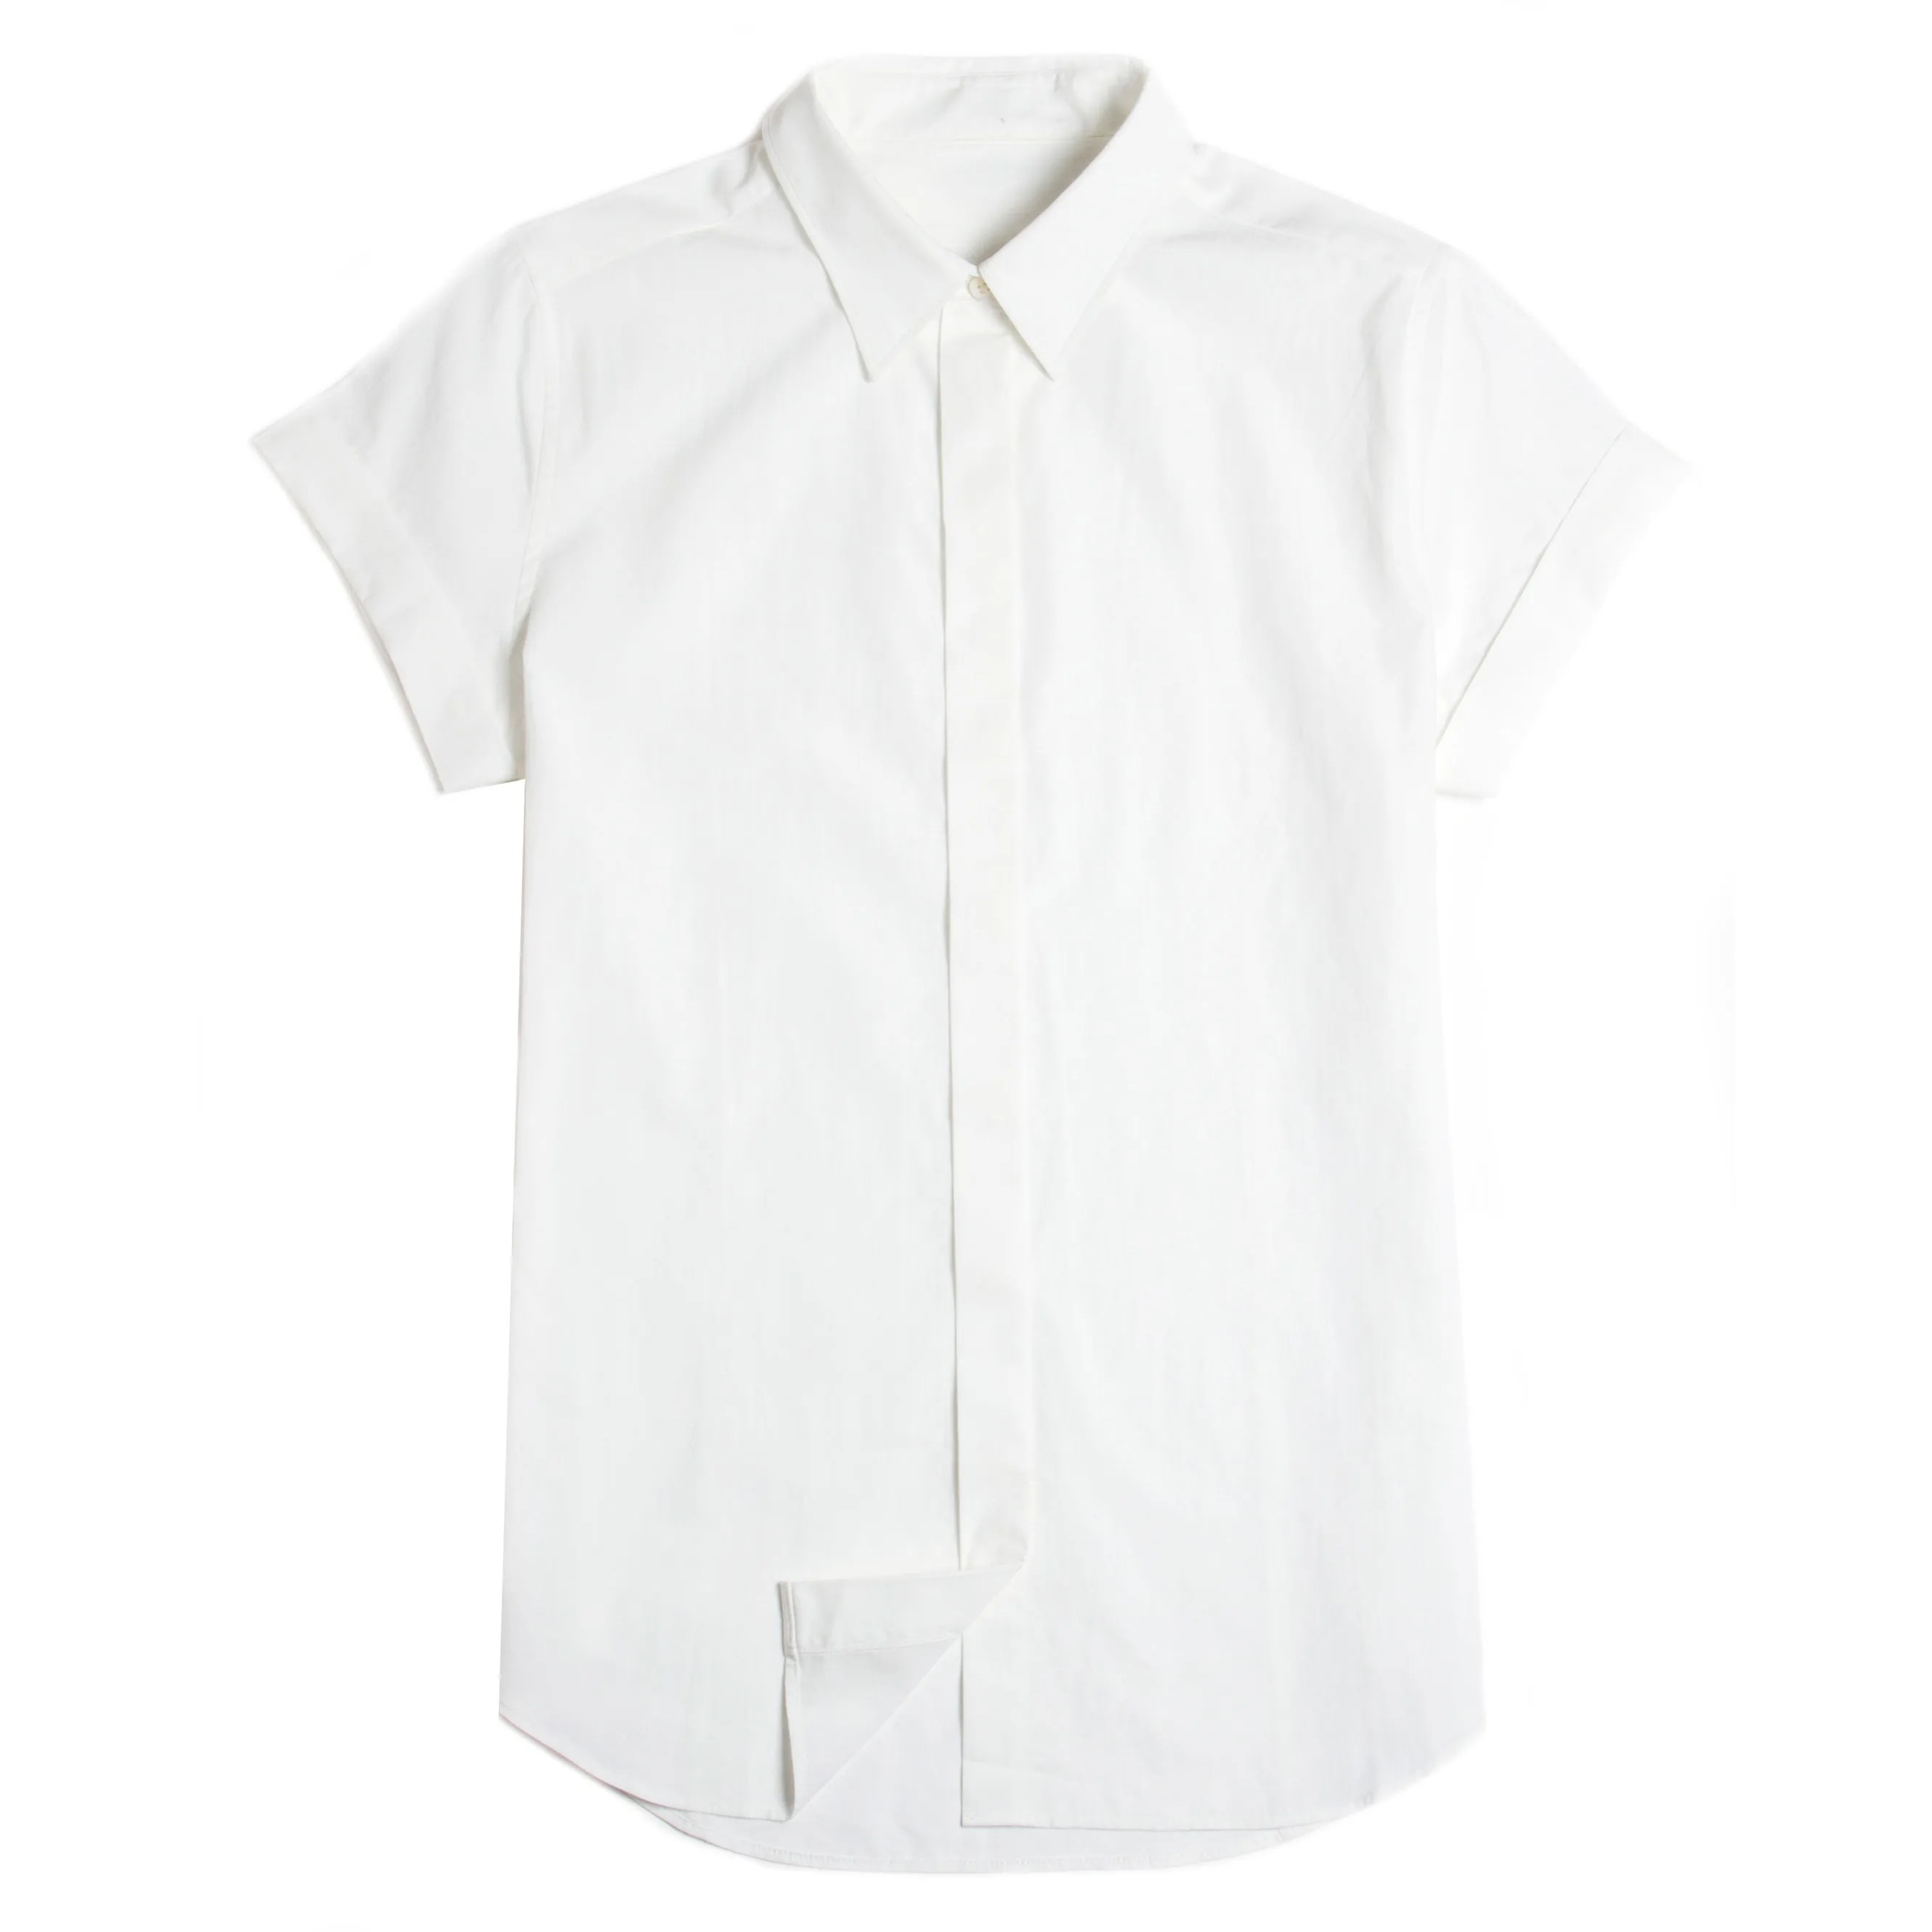 The Simple White Button-Down